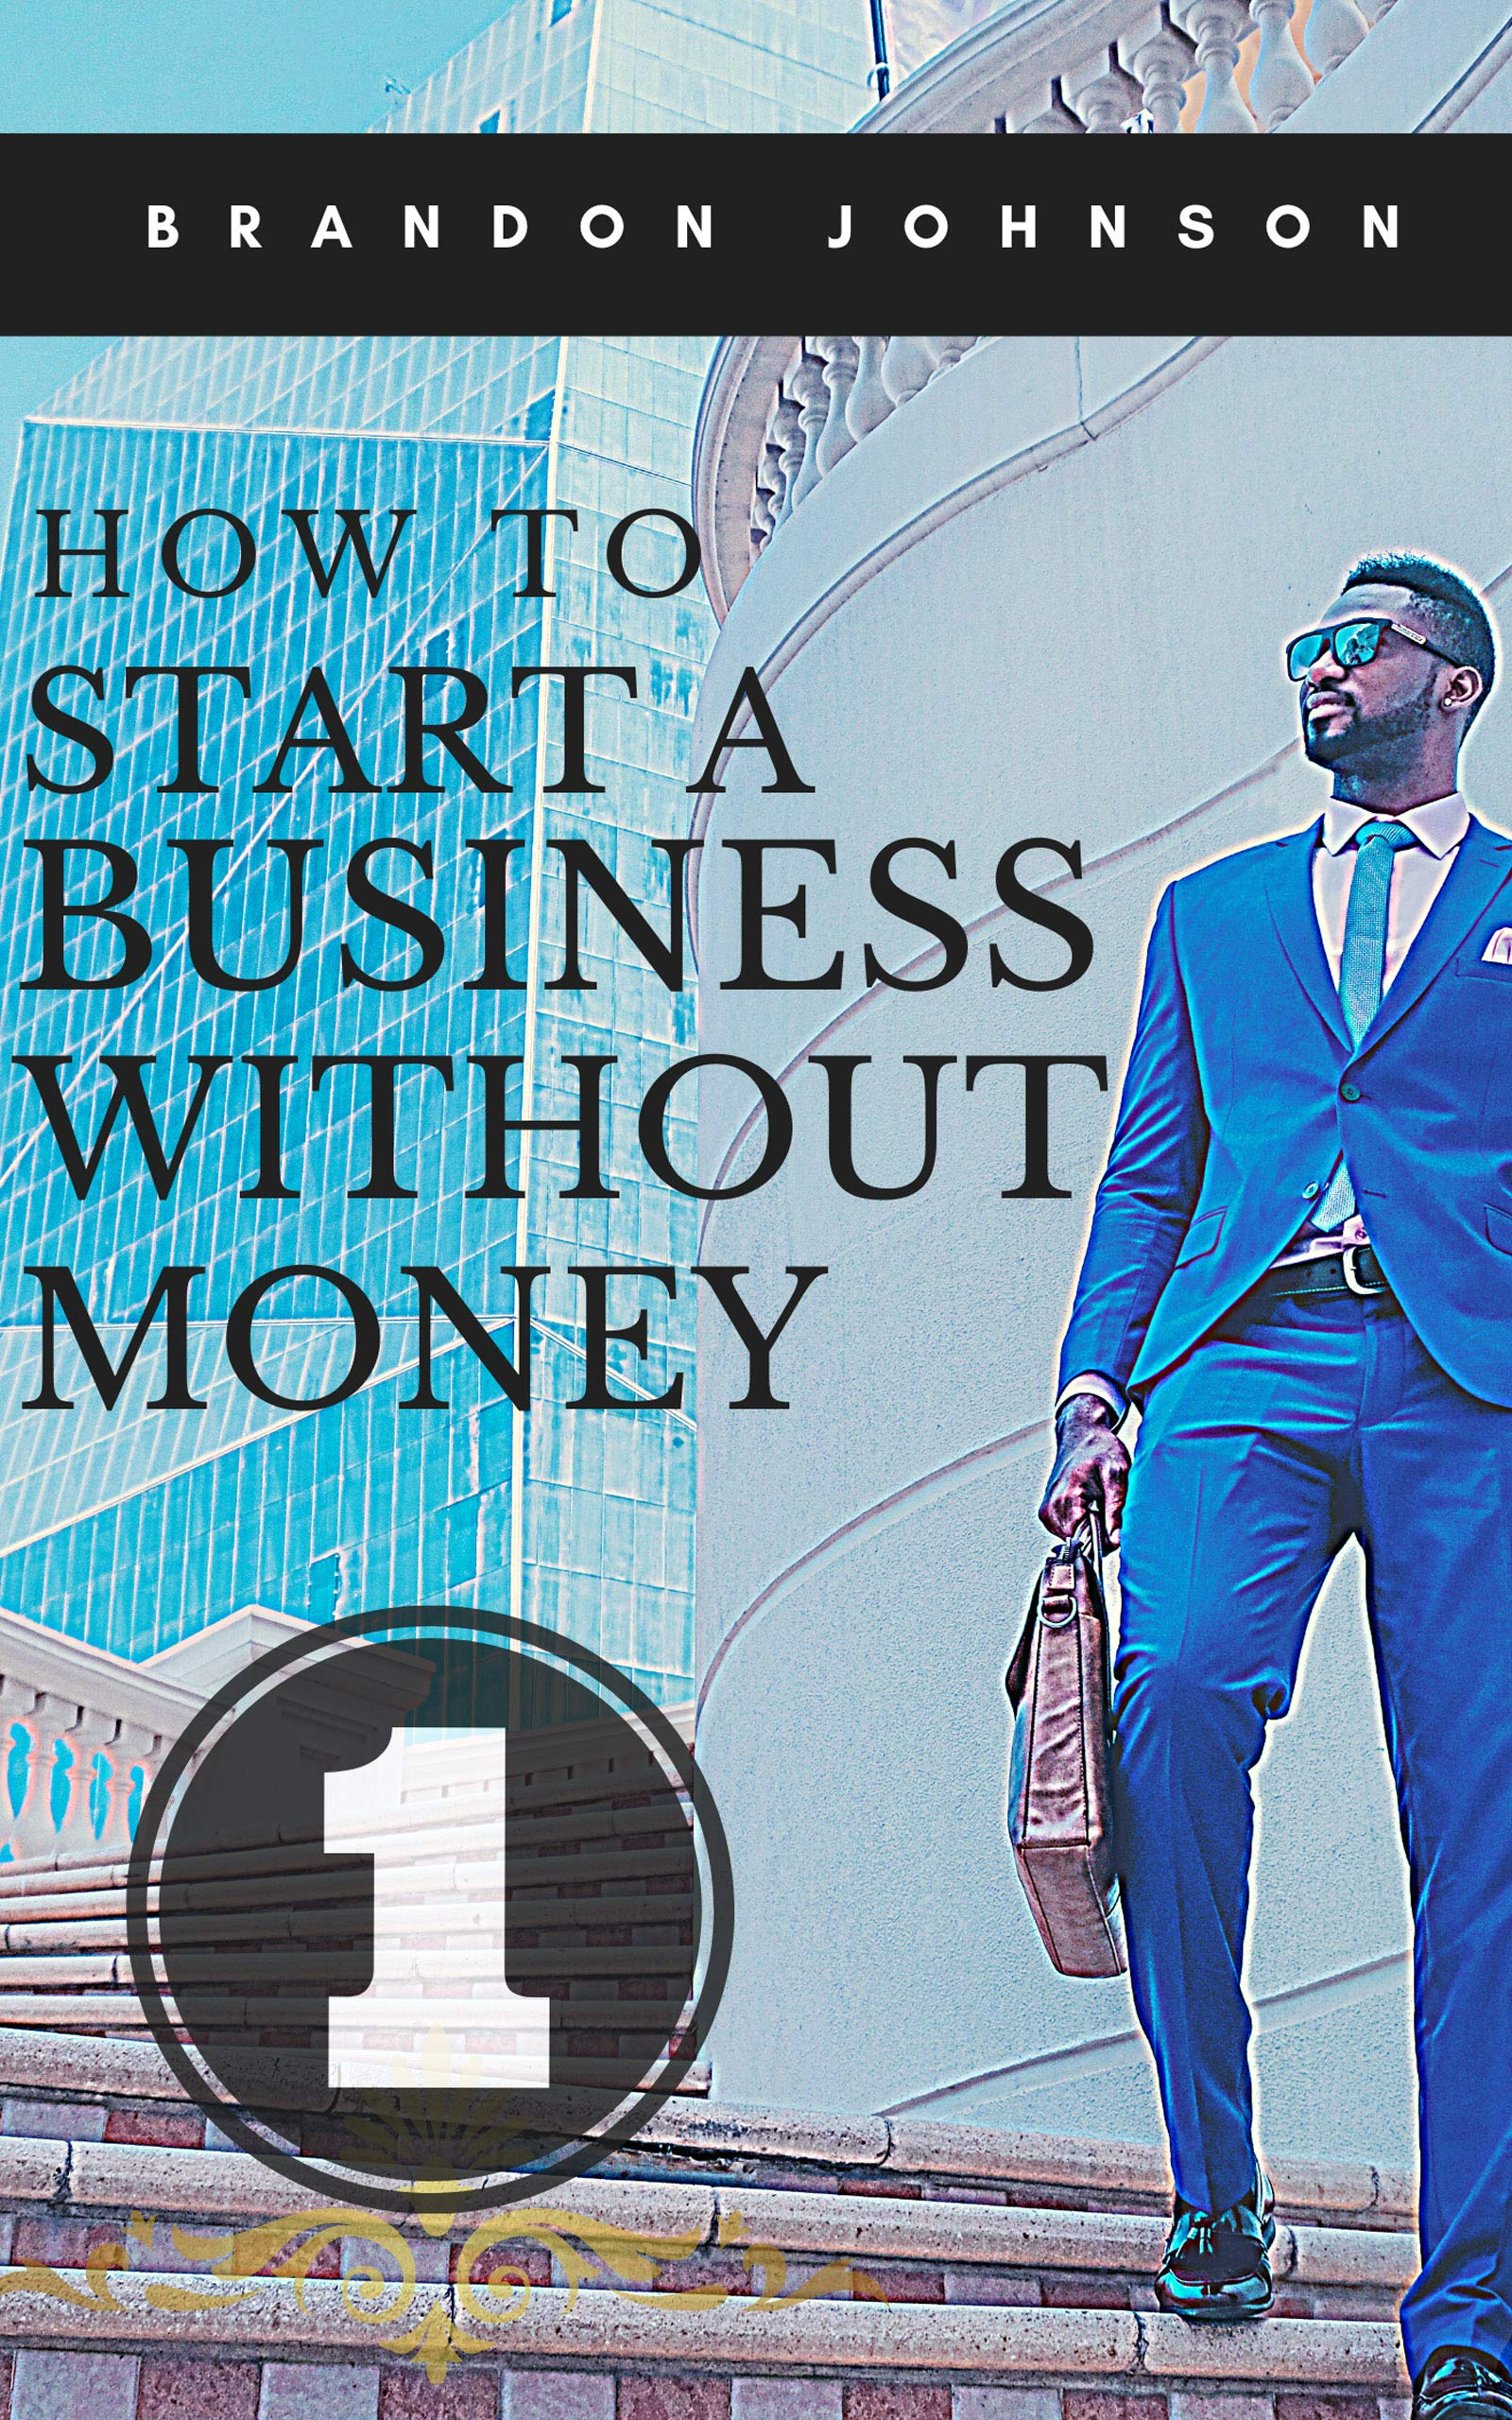 How to start a business without money: Tips for starting a business without money more than 100 niche markets that you can undertake to earn money and achieve financial freedom